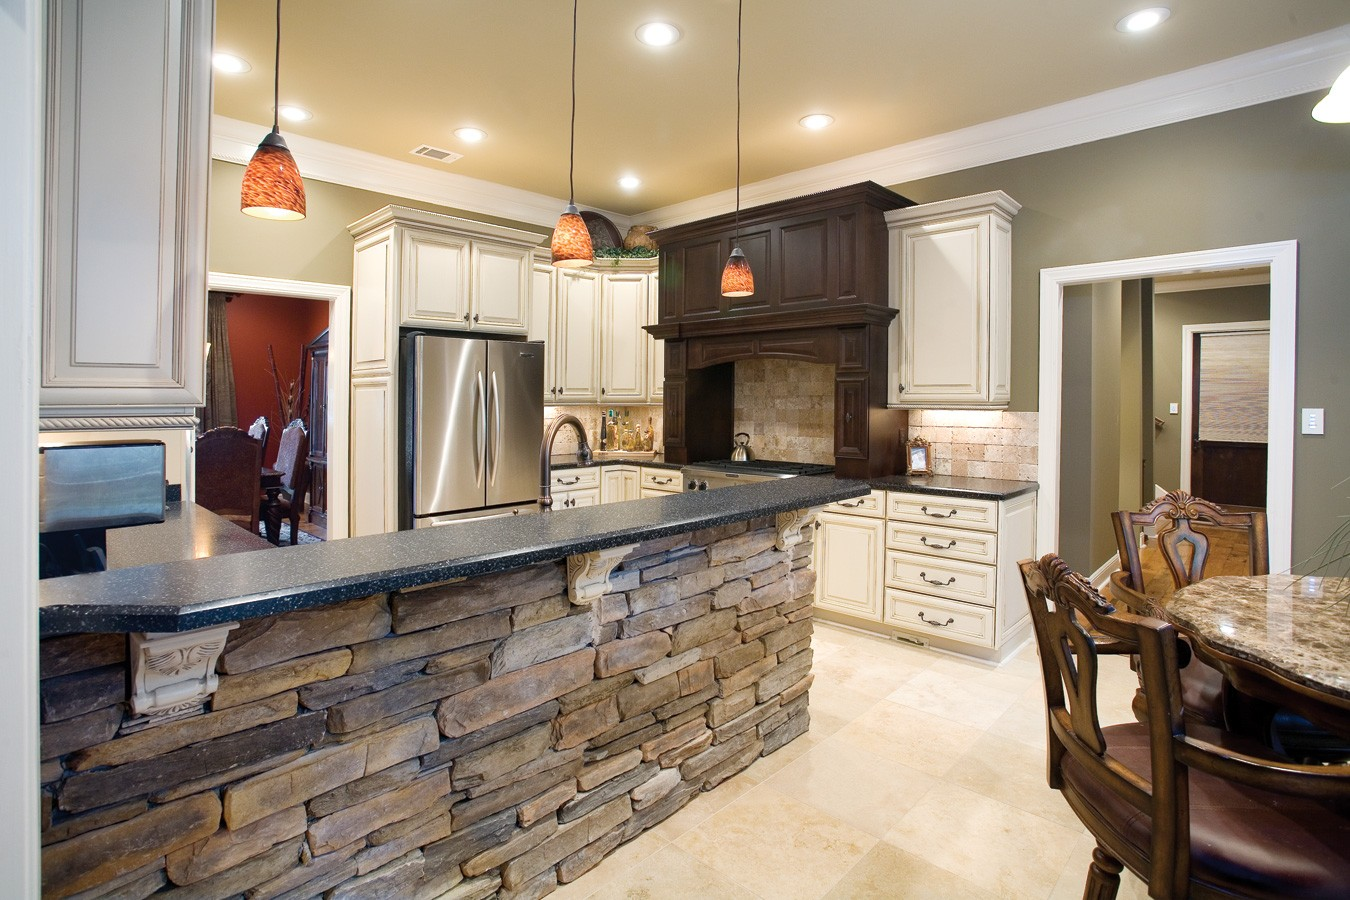 hight resolution of es rustic ledge saratoga int kitchen